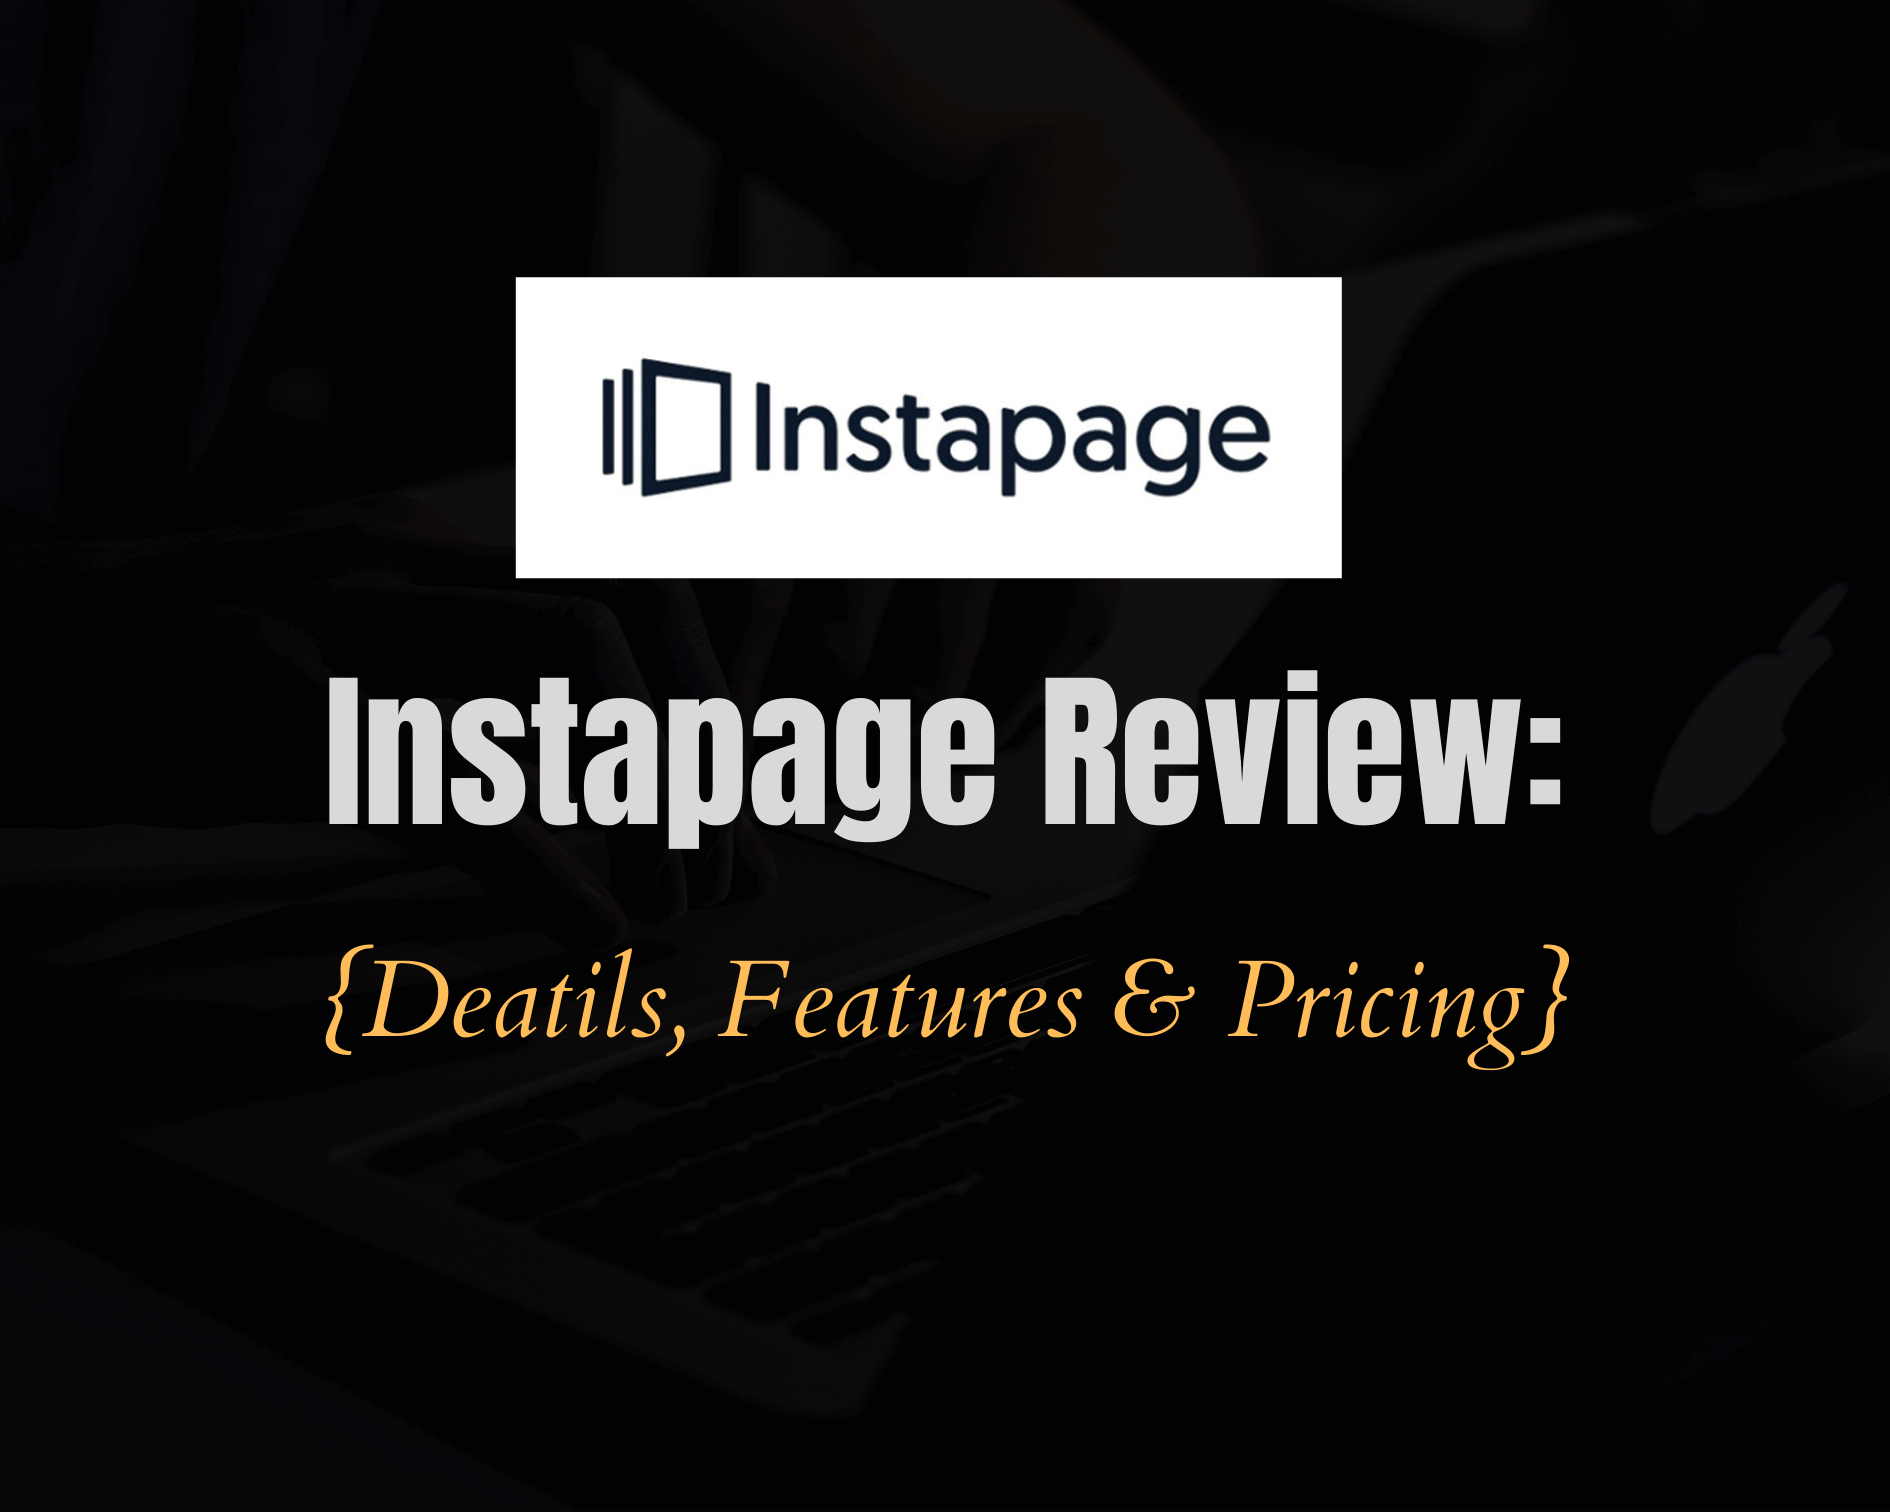 Instapage Review 2021: Details, Features & Pricing